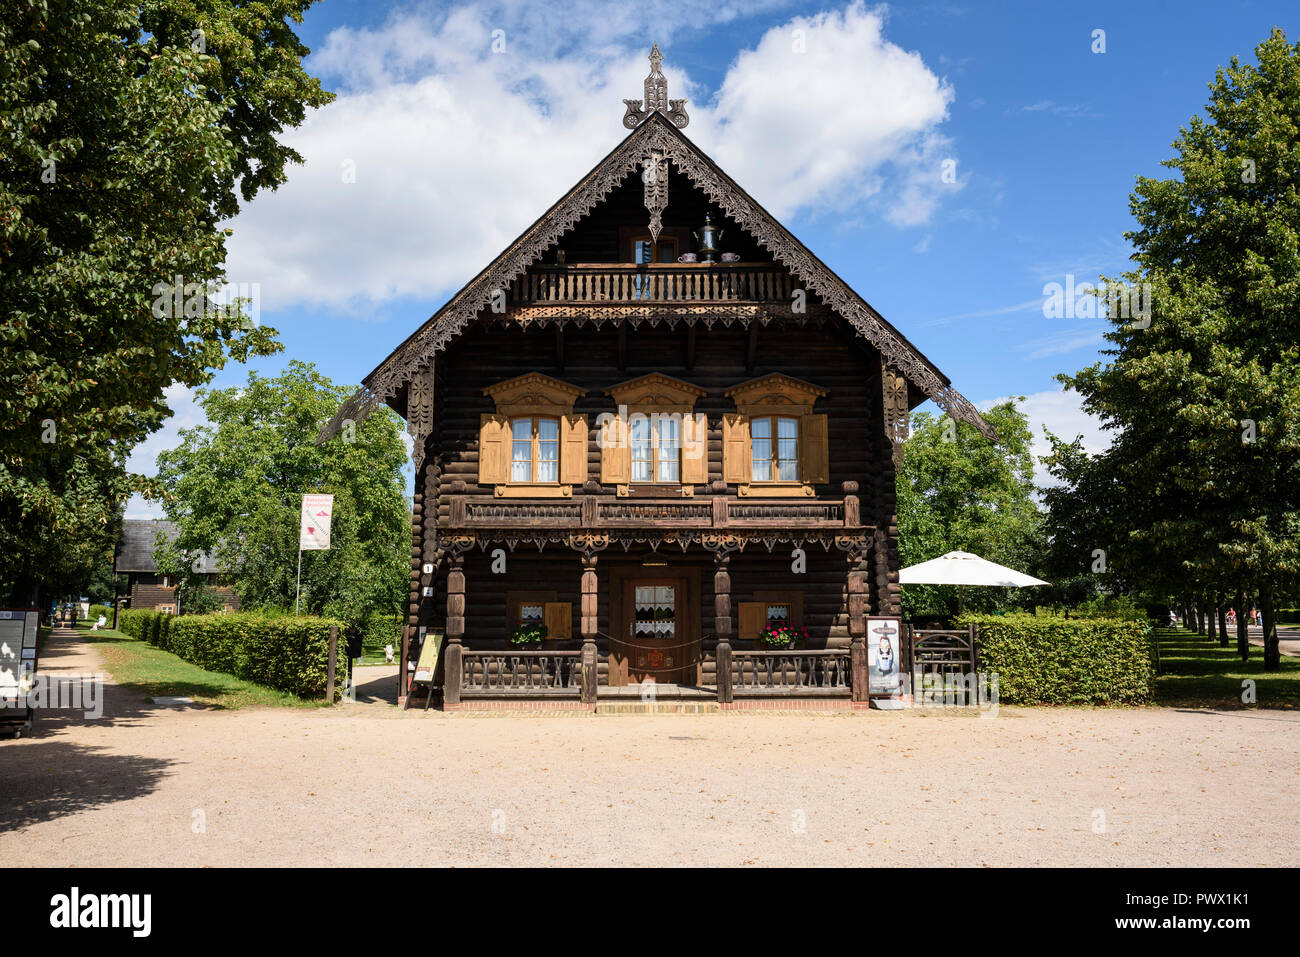 Potsdam. Berlin. Germany. Traditional Russian timber house in the settlement of Alexandrowka, a 19th century Russian colony in Potsdam. House No. 1, s - Stock Image